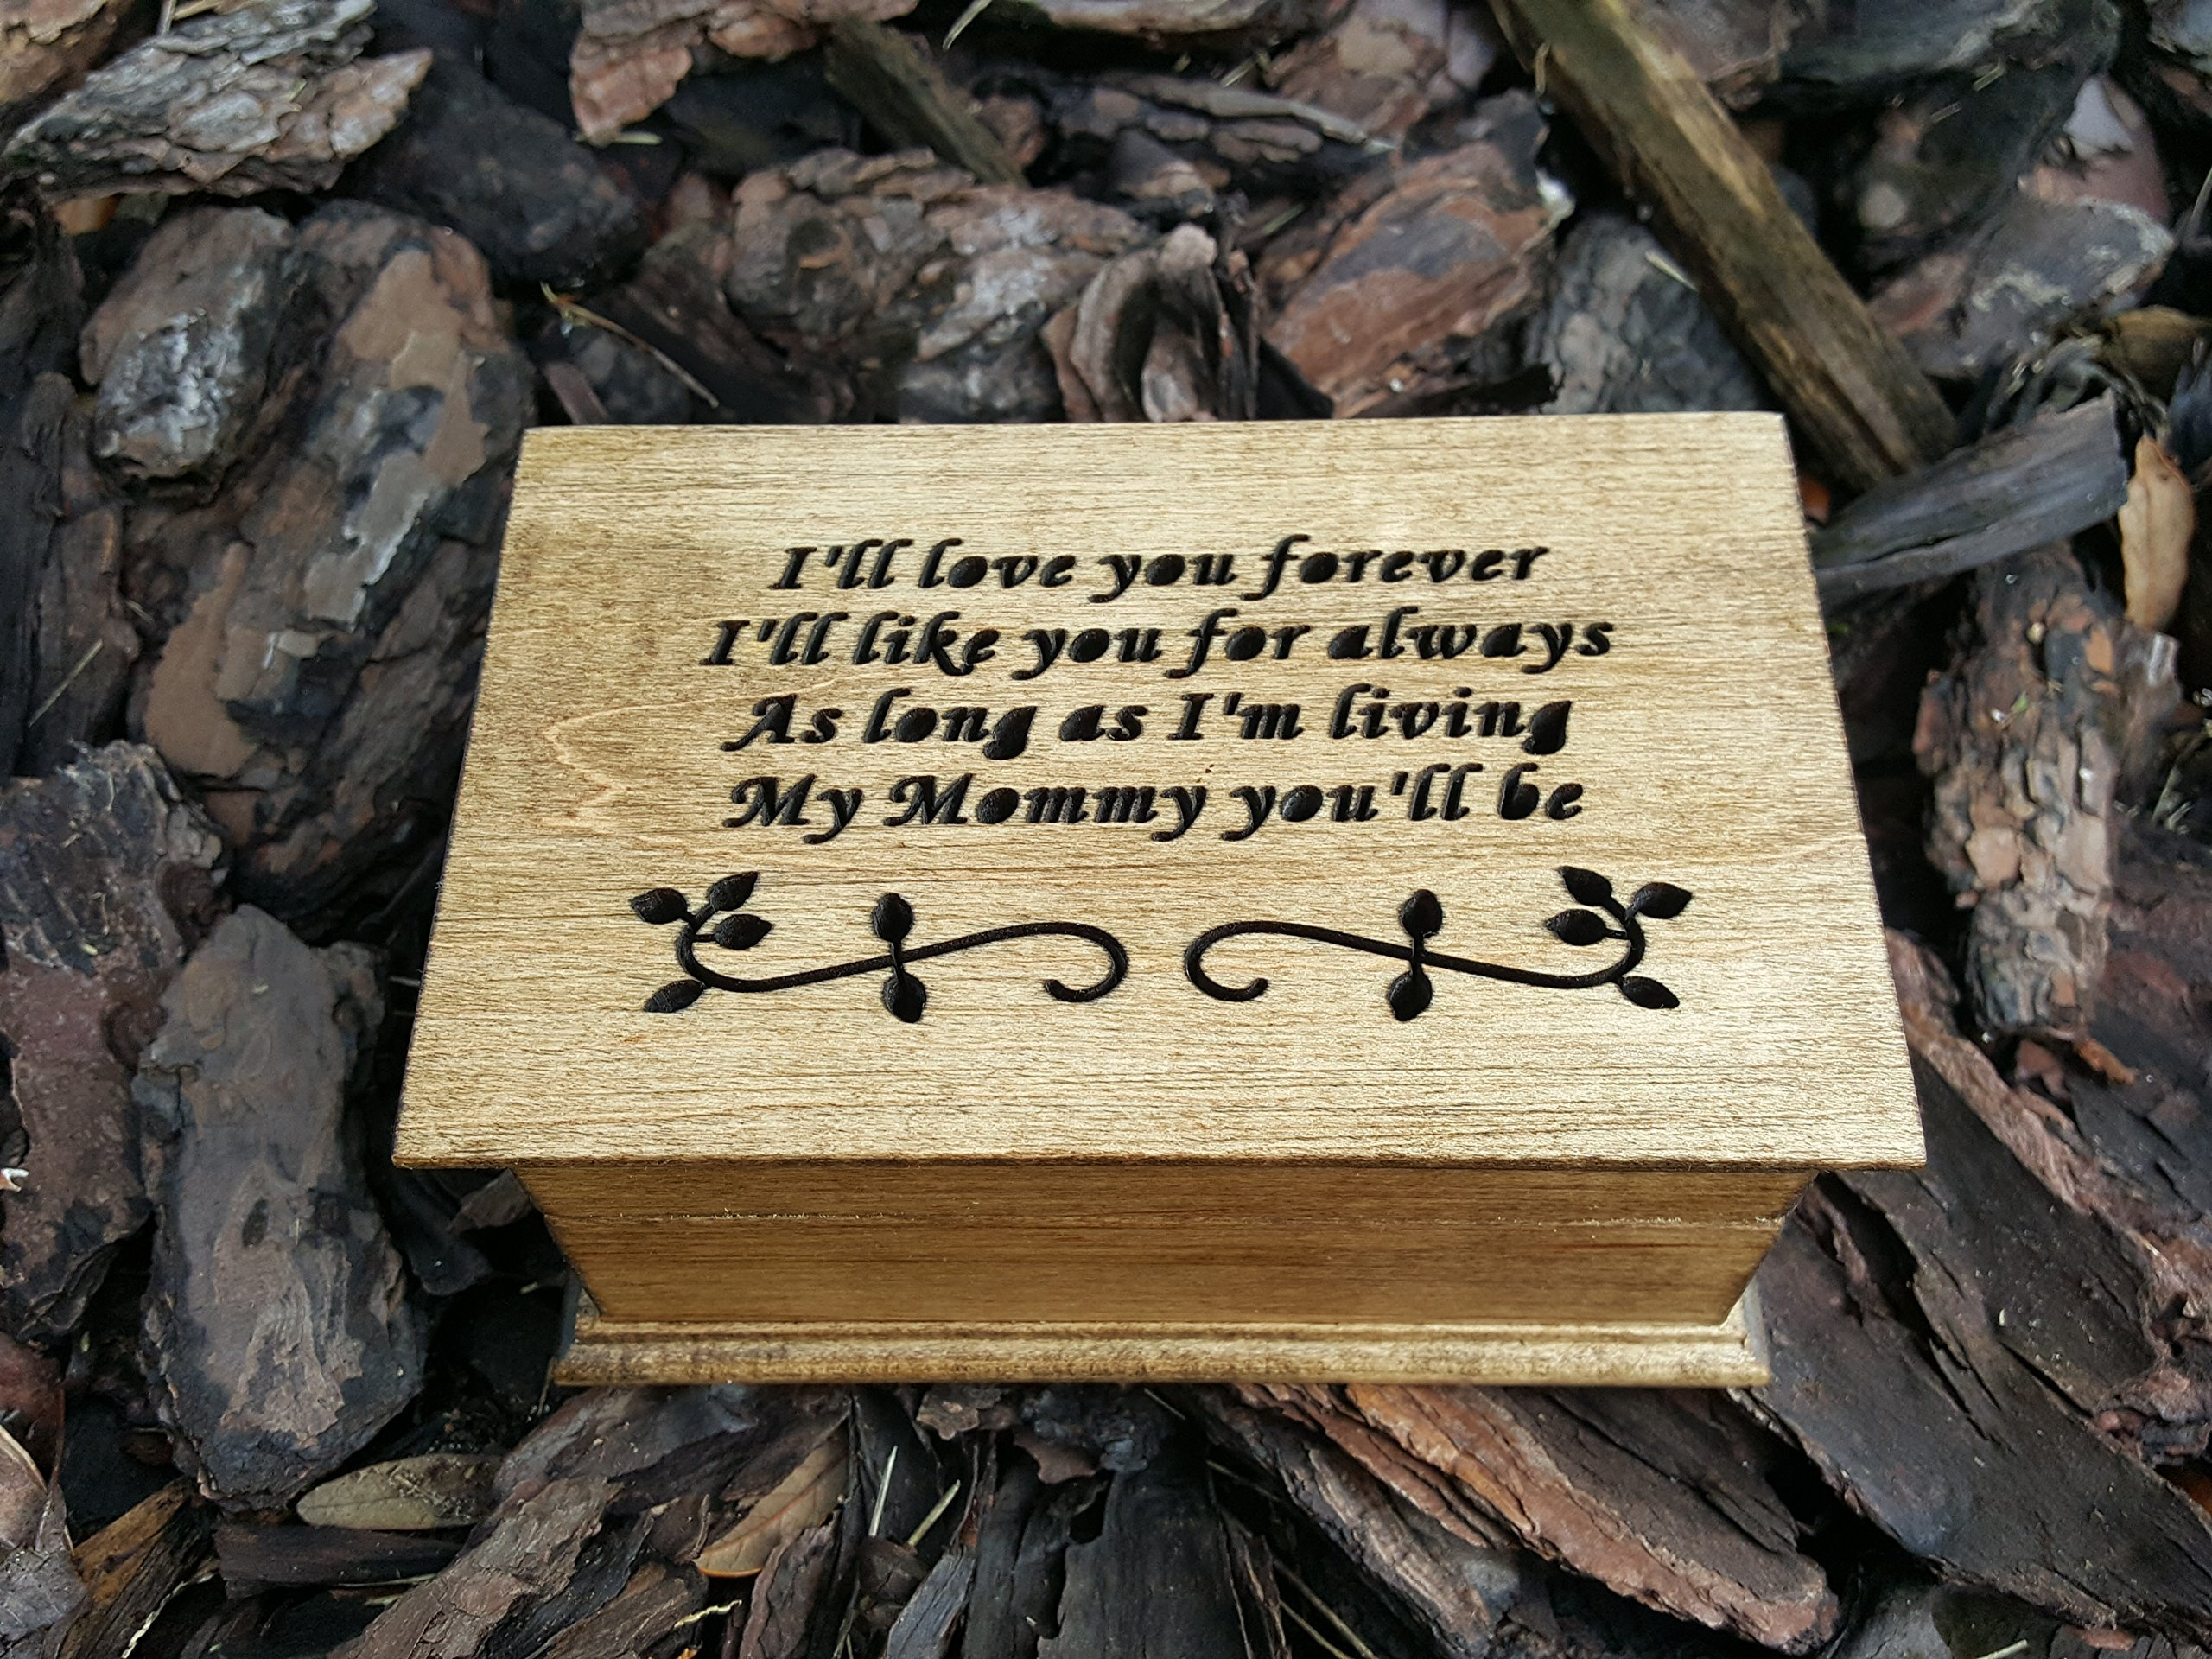 Custom Engraved wooden musical jewelry box with I'll love you forever, I'll like you for always As long as I'm living My Mommy you'll be, wedding gift for Mom